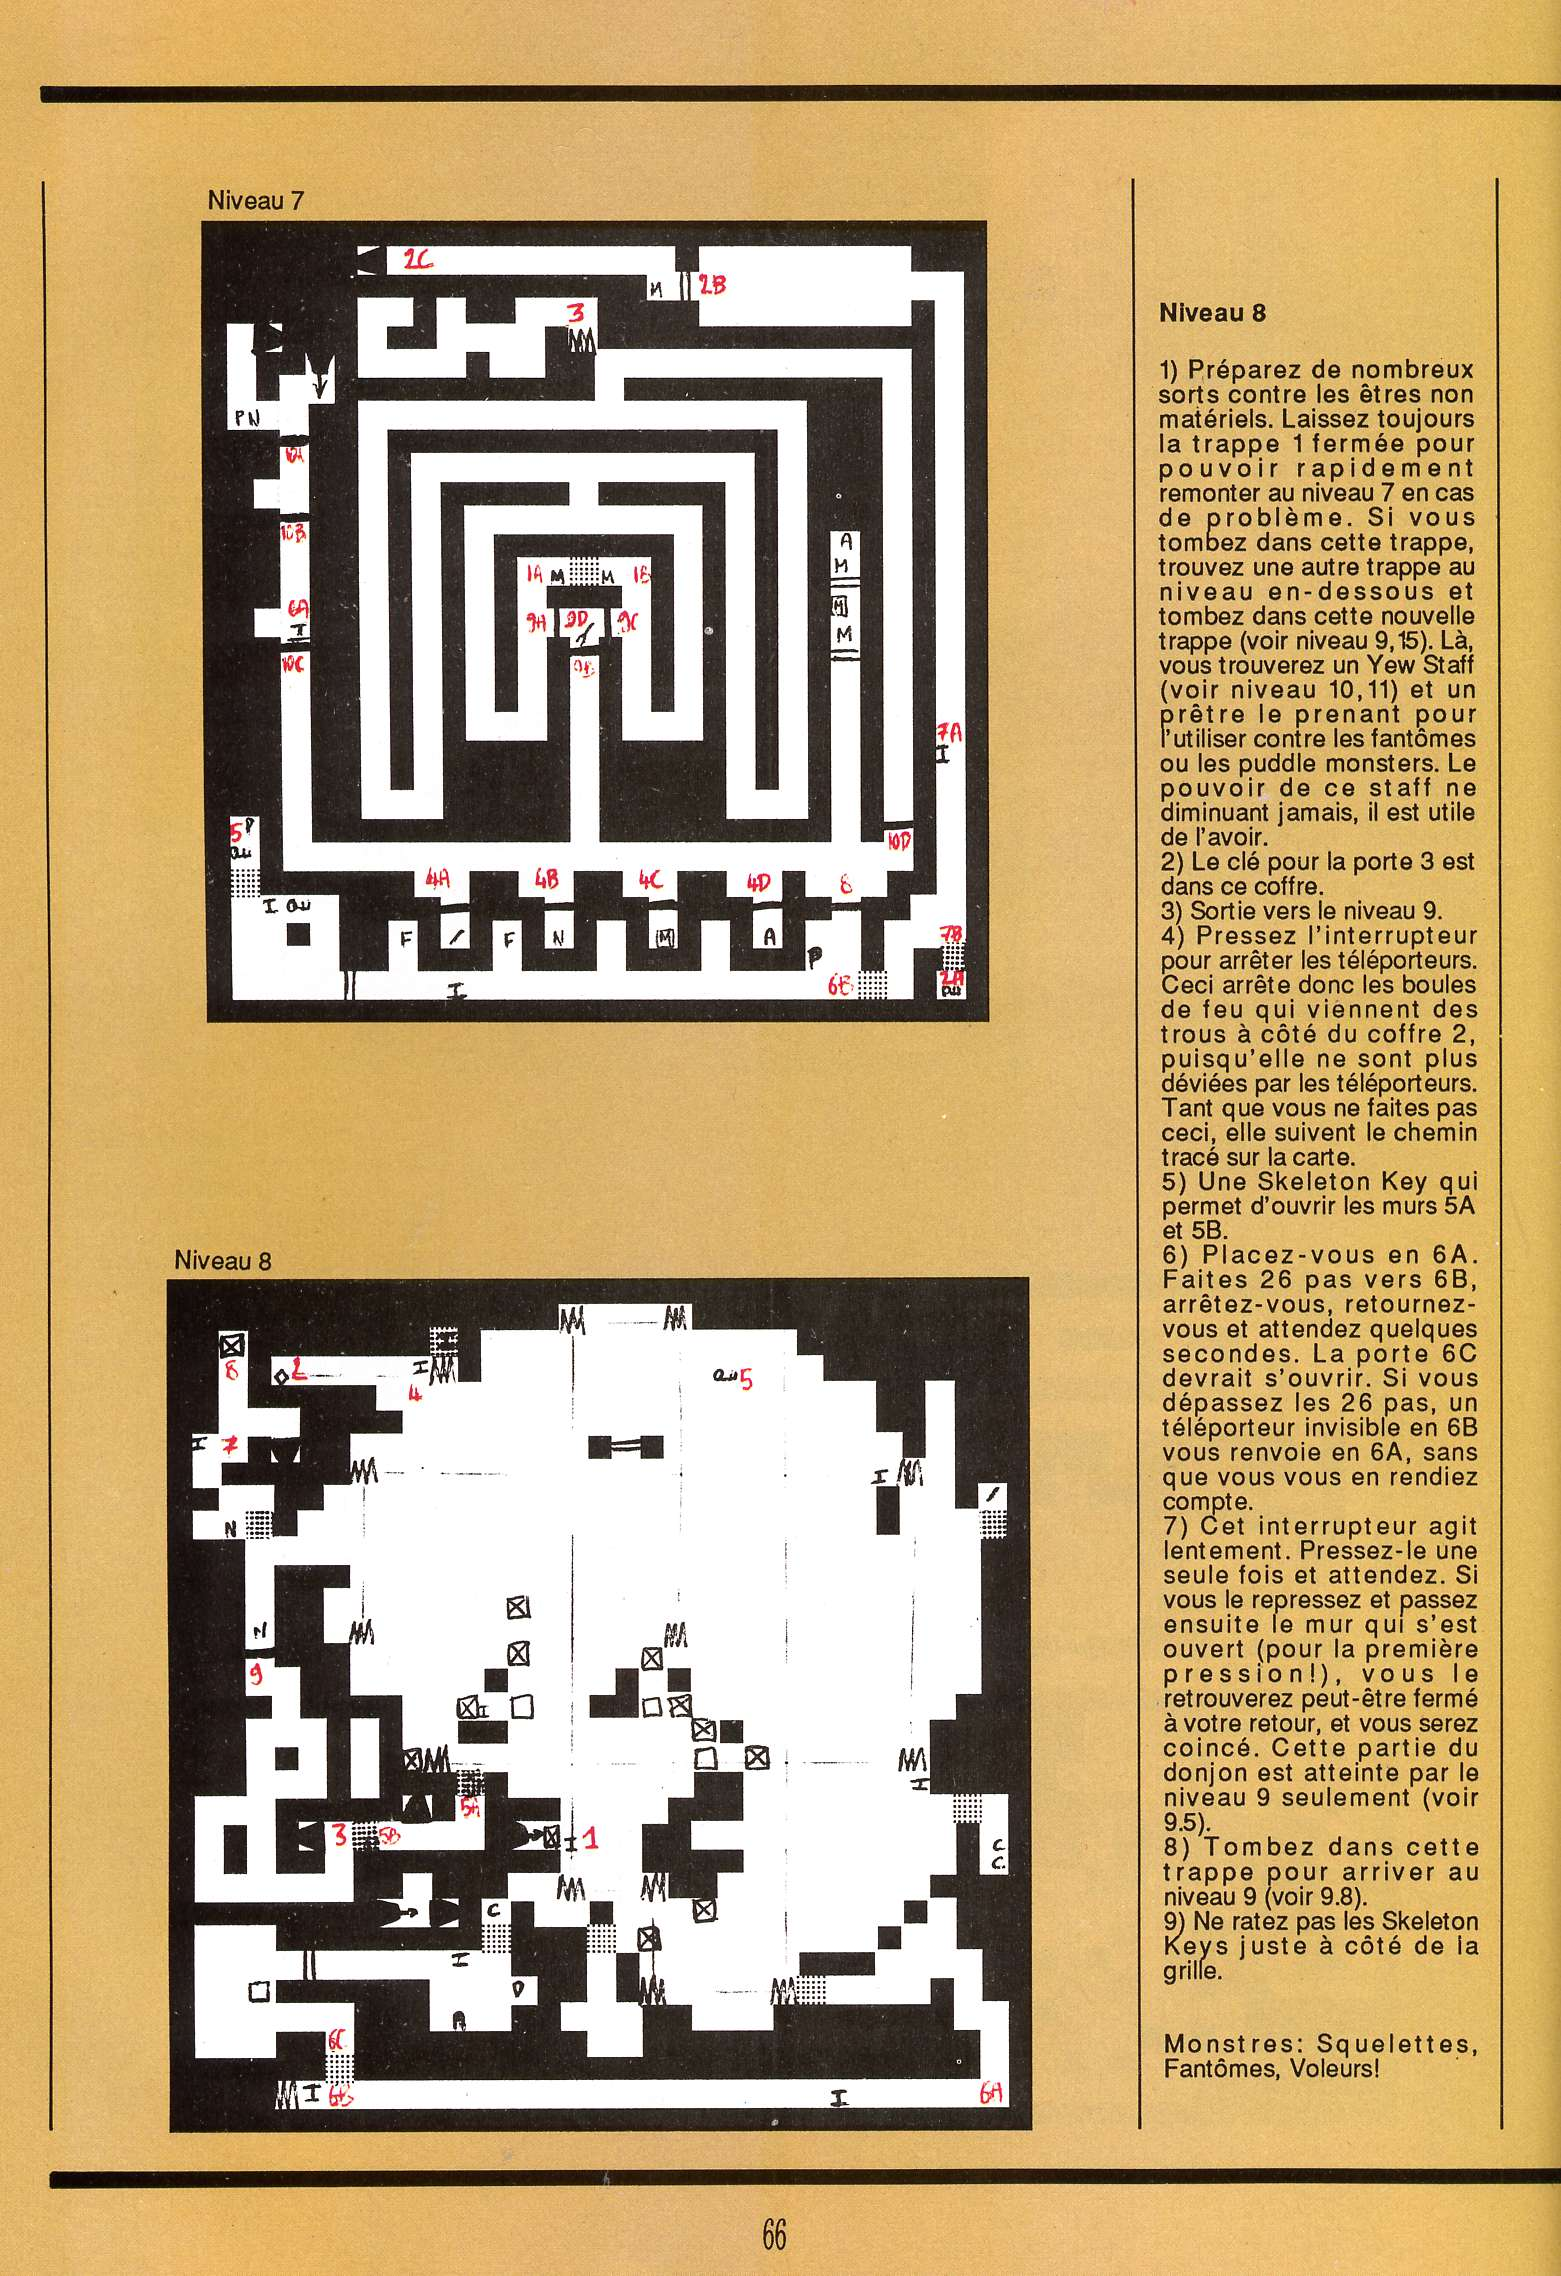 Dungeon Master for Atari ST Guide published in French magazine 'Gen4', Issue #9, March 1989, Page 66